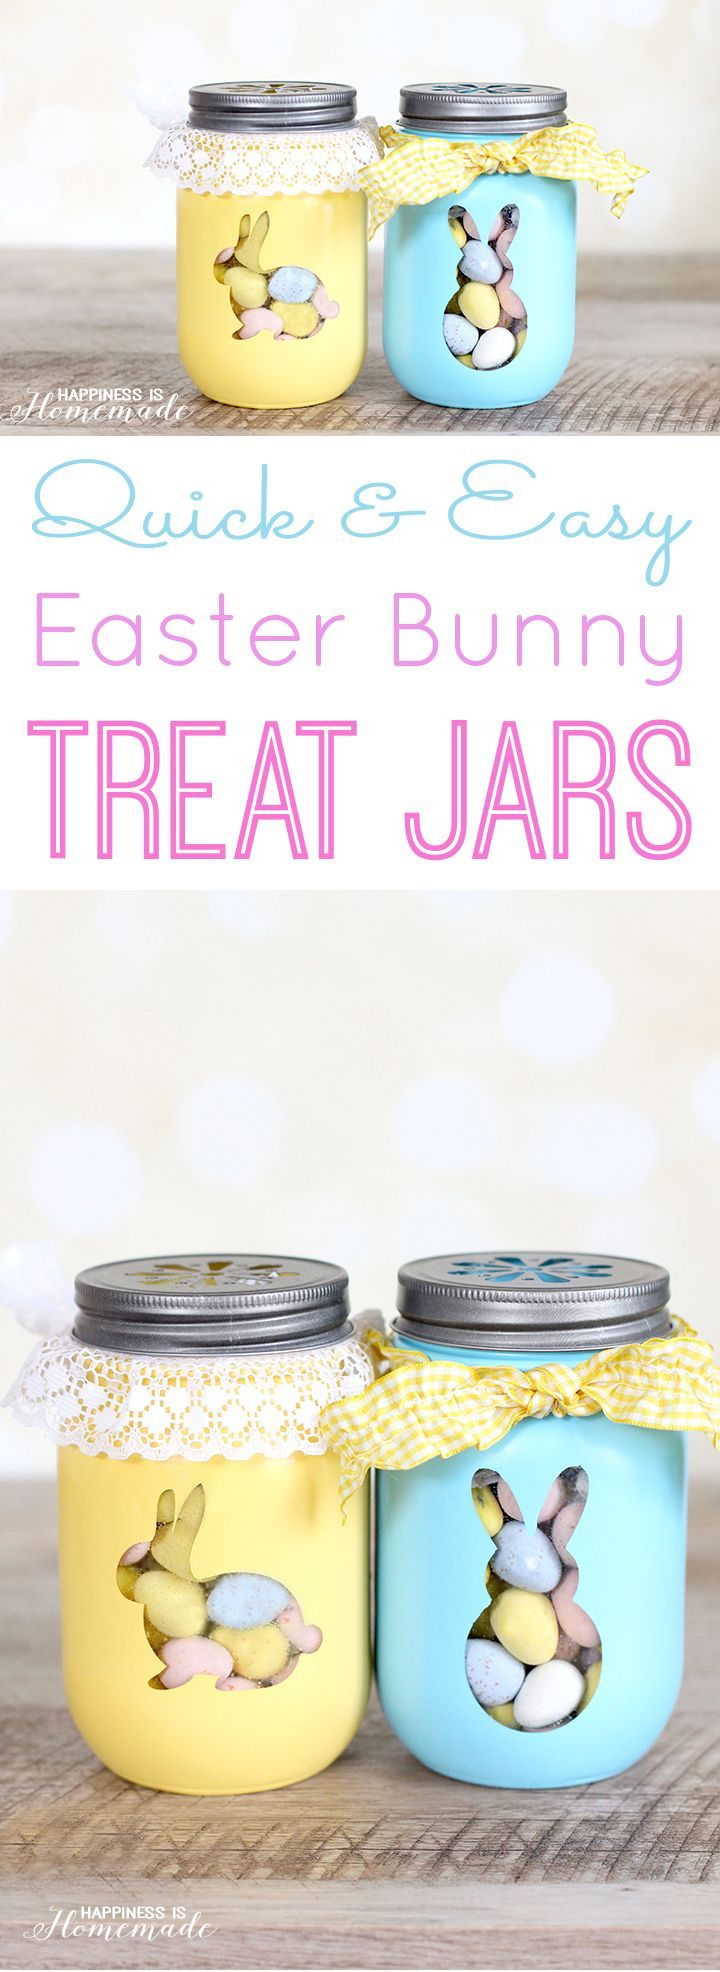 Easter bunny treat jars easter bunny easter and bunny quick easy easter bunny treat jars negle Choice Image